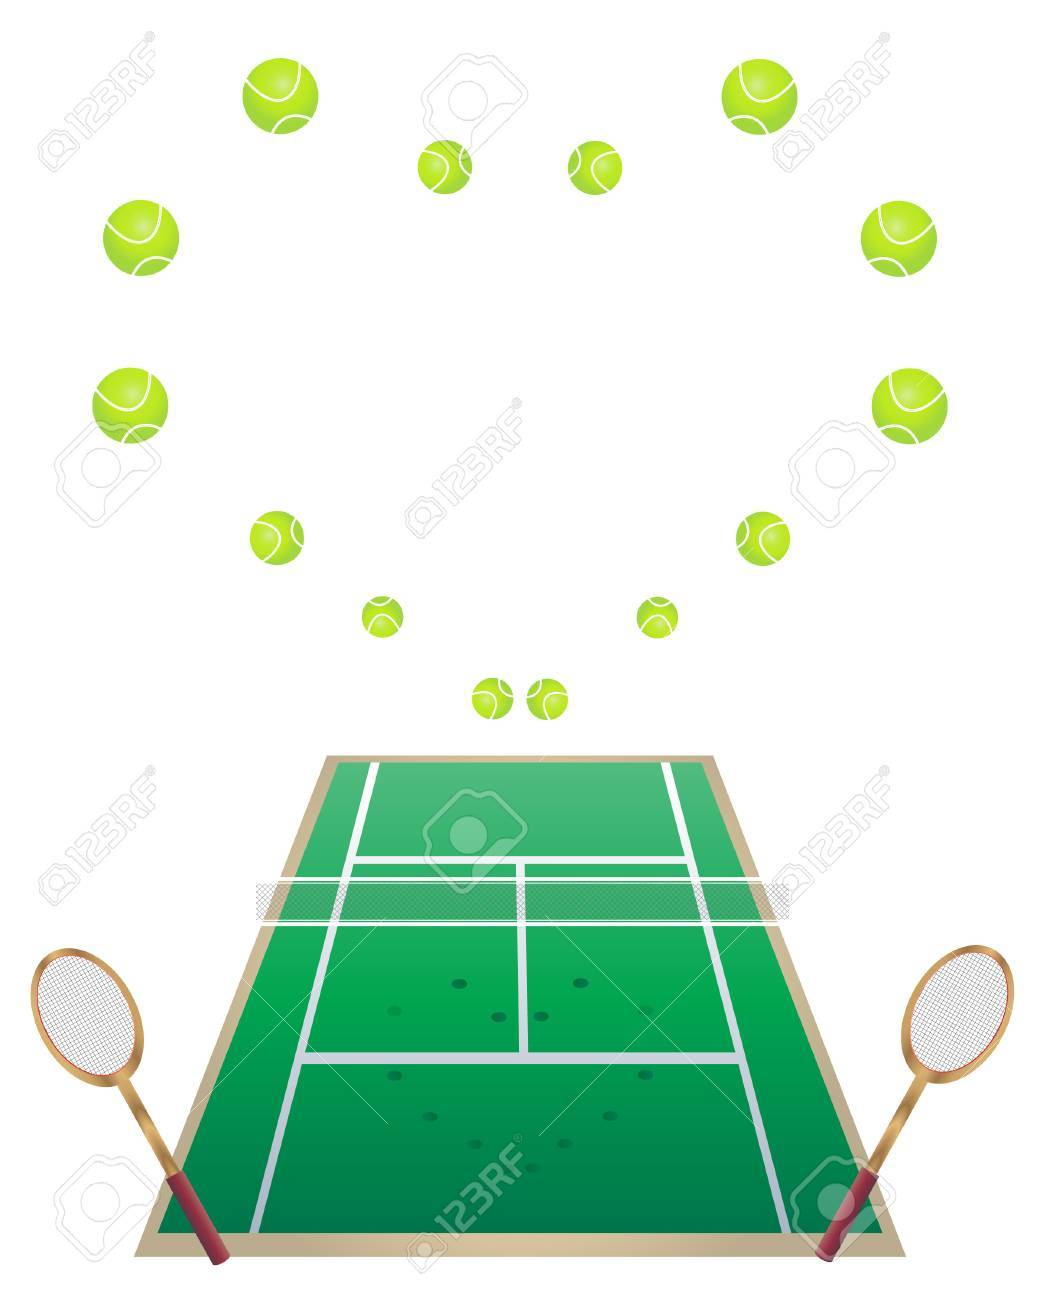 Lawn Tennis an Illustration